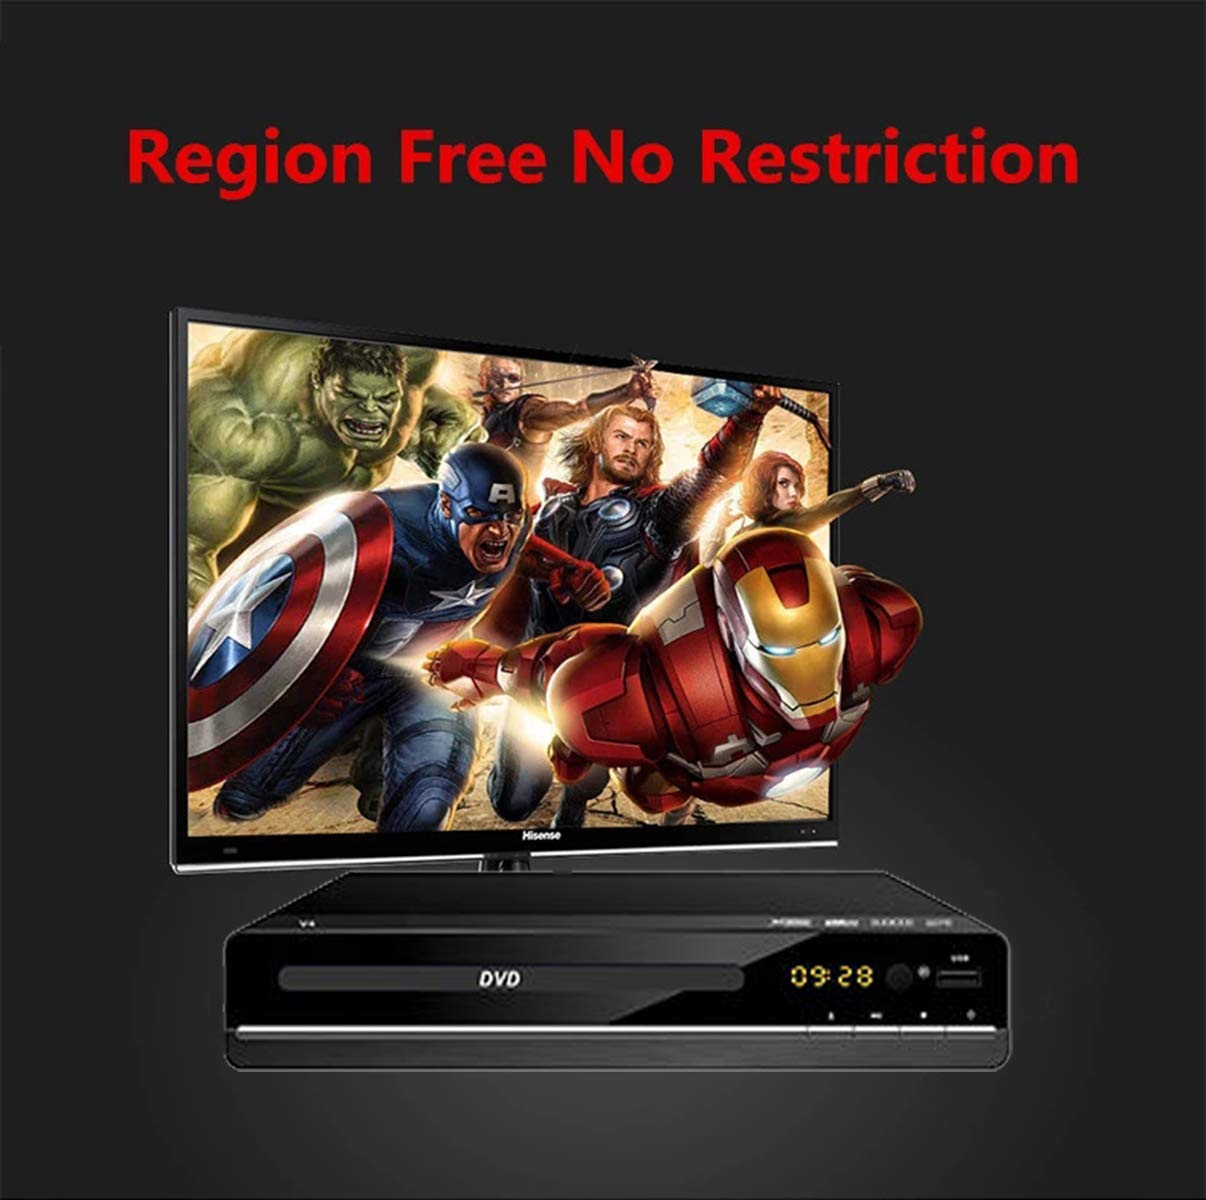 Compact DVD Player, Multi Region DVD Players for TV - Region Free Digital Player Multi- Format playability USB Port, RCA Audio Cable Hook Up, LED Display, Remote Control